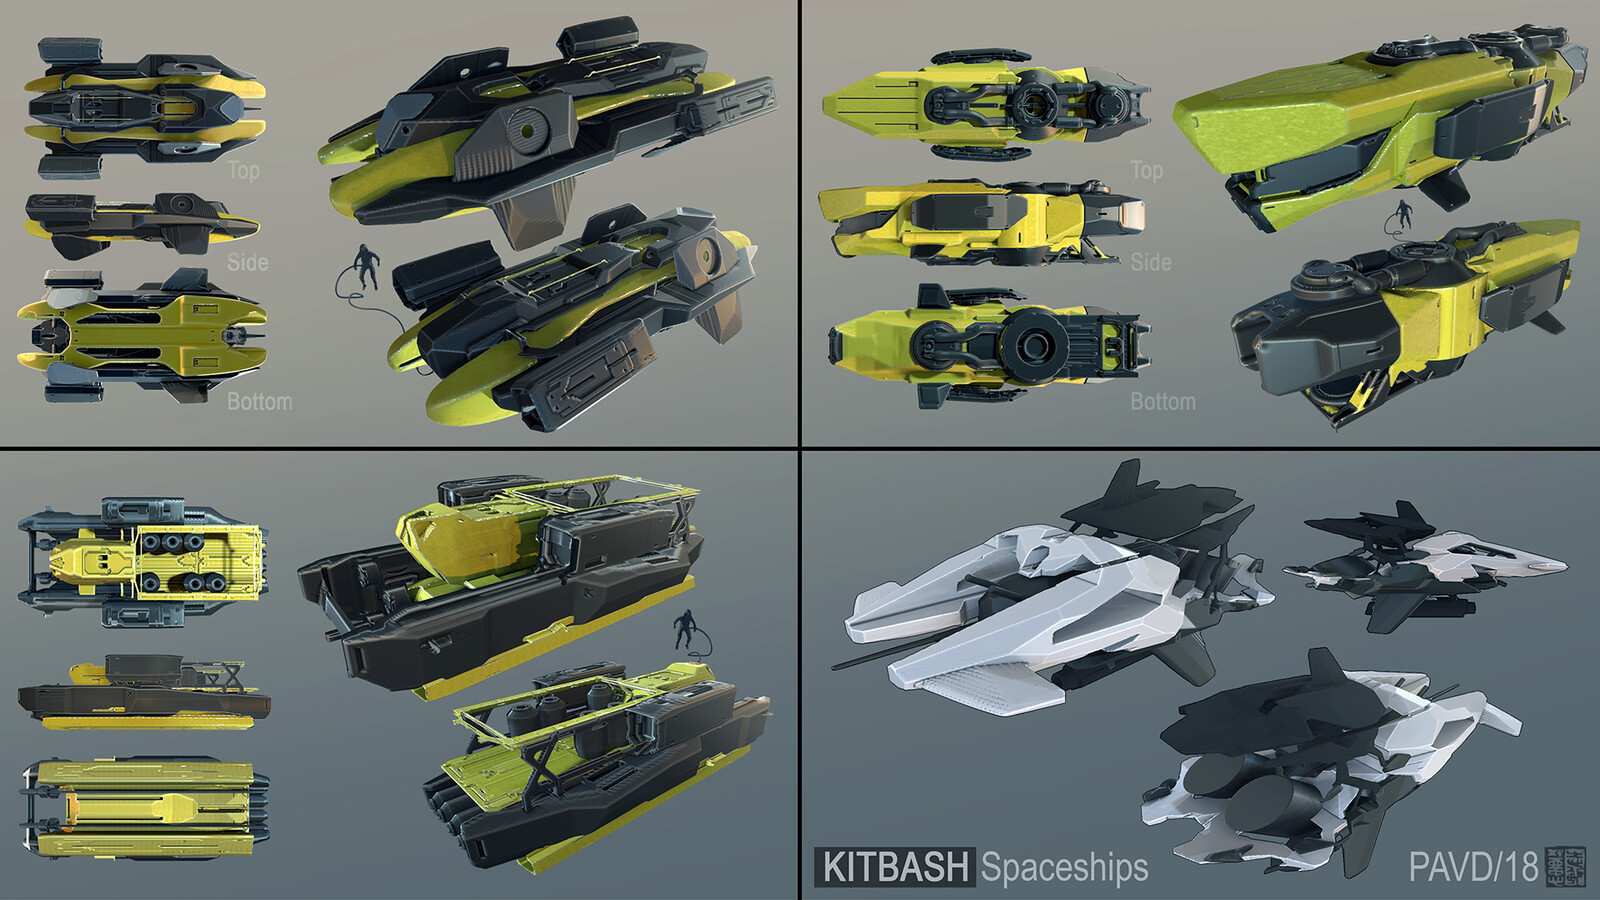 Kitbash spaceship sketches...